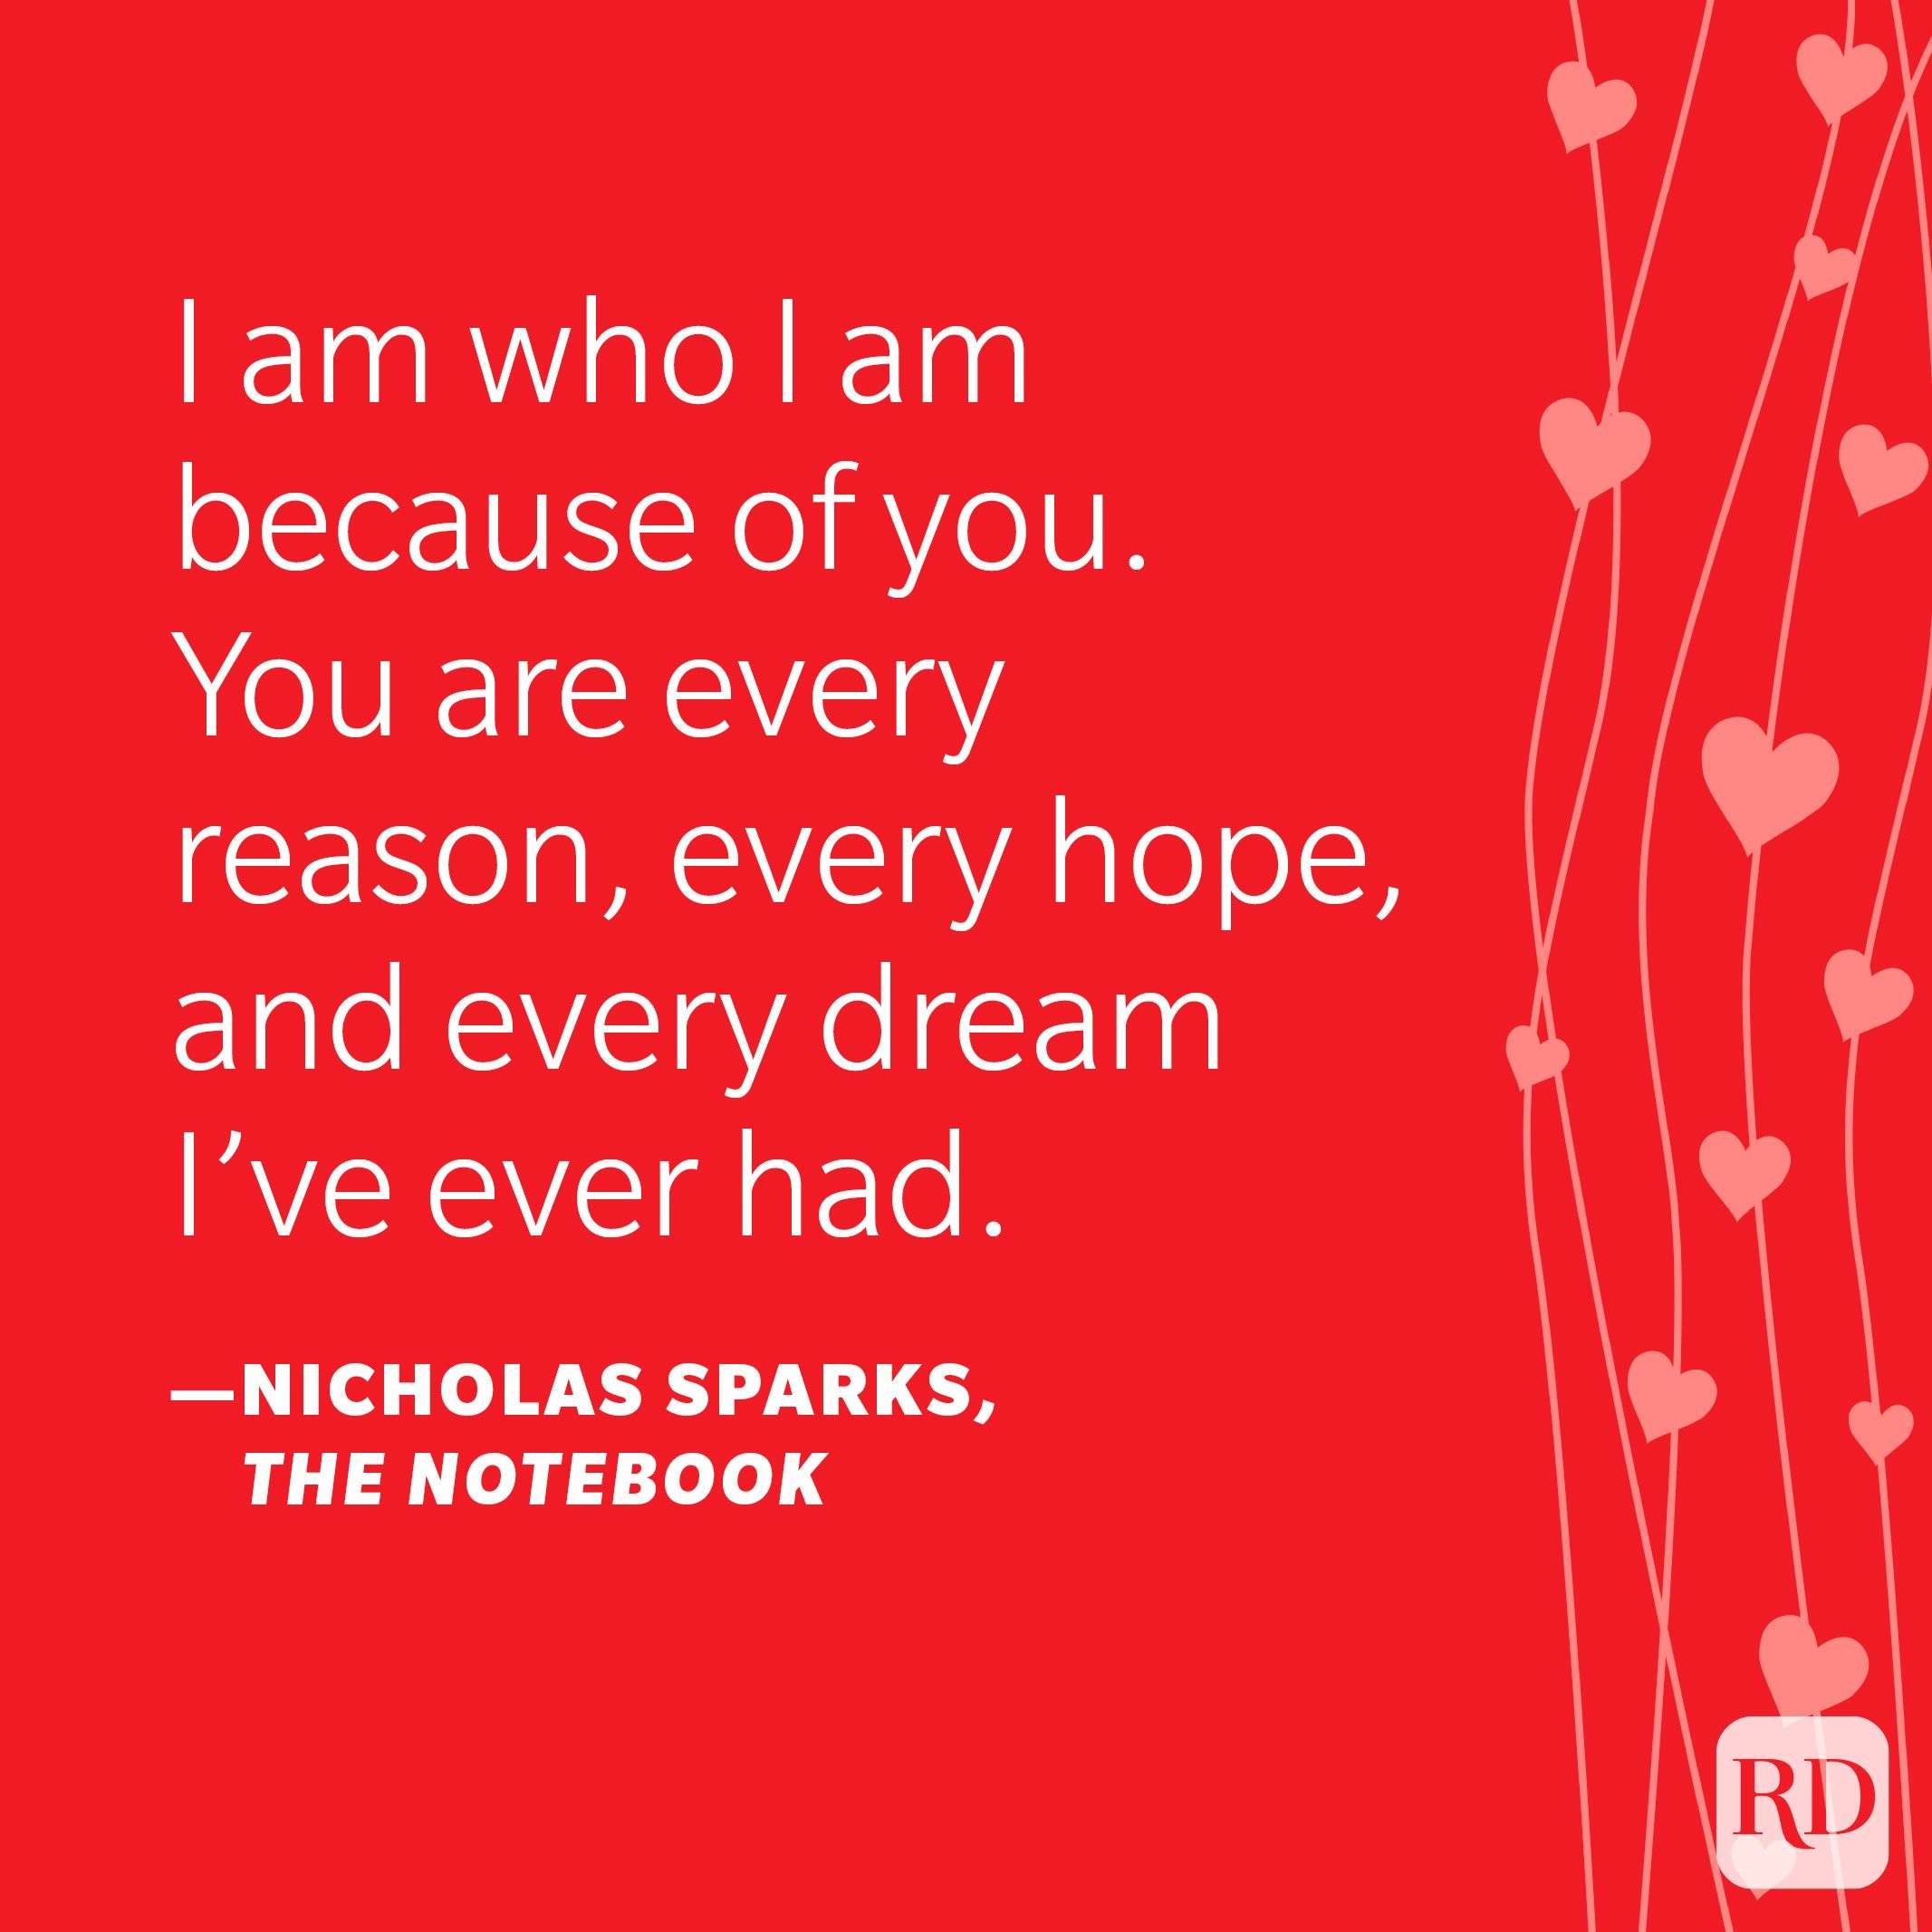 """""""I am who I am because of you. You are every reason, every hope, and every dream I've ever had."""" —Nicholas Sparks, The Notebook"""